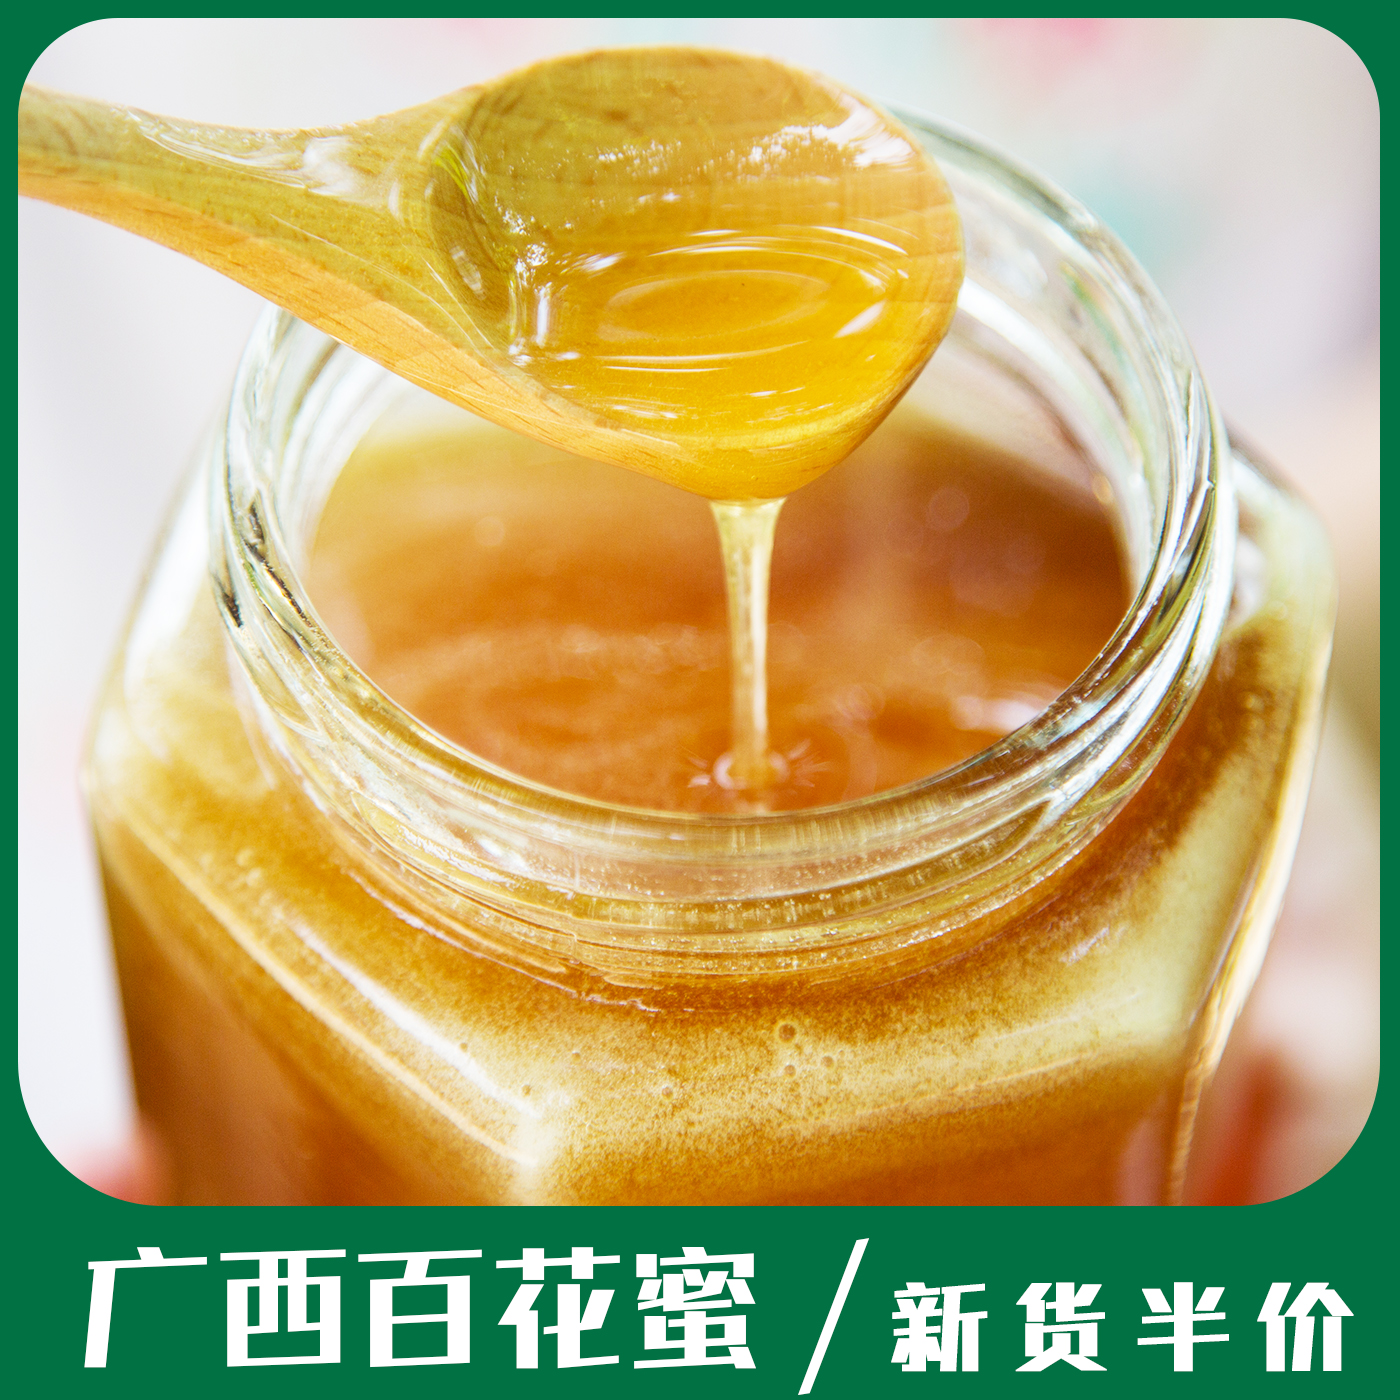 Guangxi Shenshan Baihua honey pure natural wild native honey farmhouse honey health beauty honey 500g